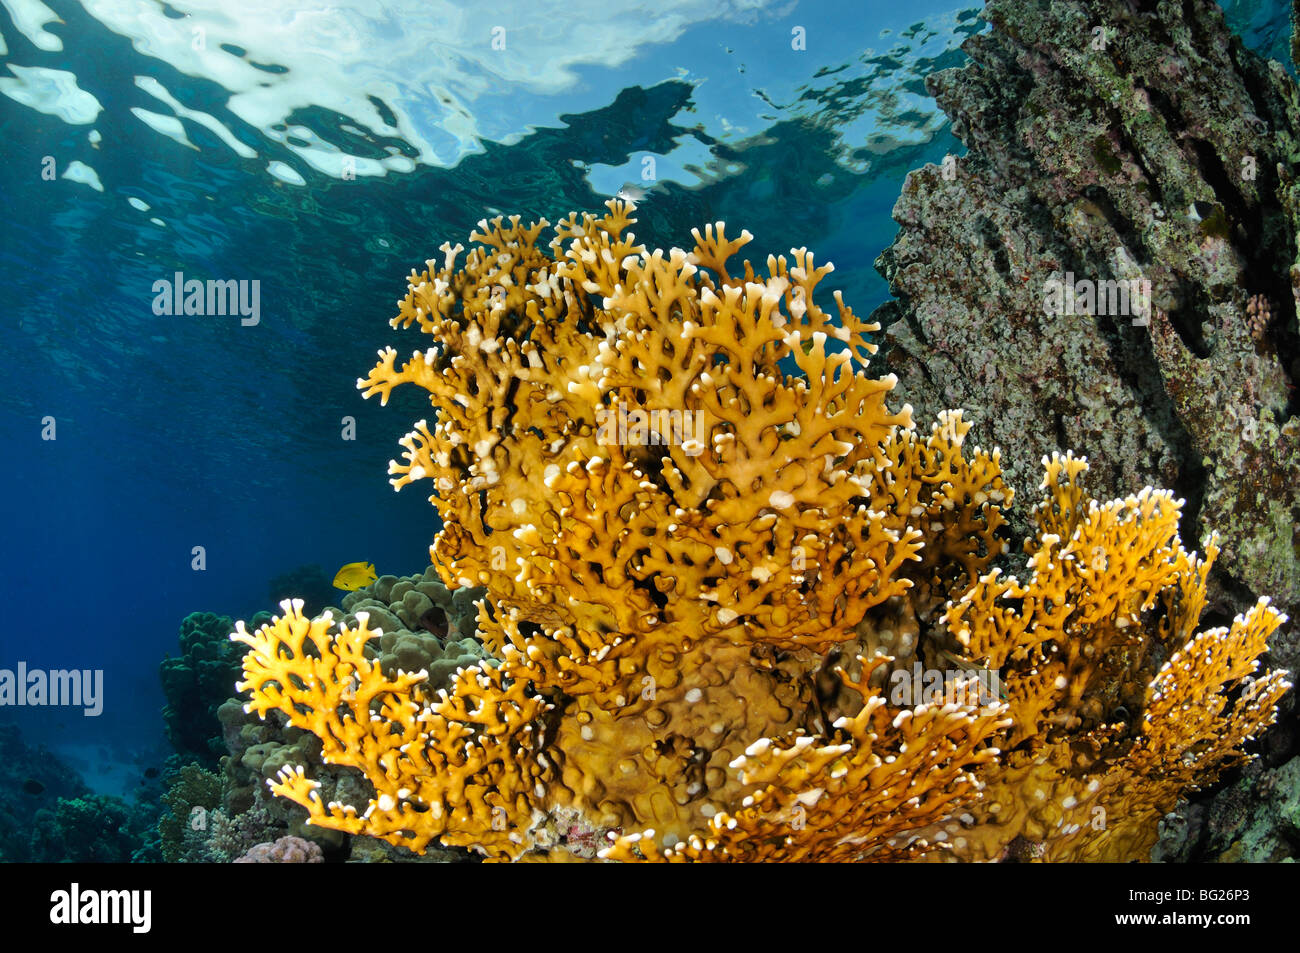 'Fire coral', Millepora dichotoma, underwater on coral reef with surface in view, 'Red Sea' - Stock Image